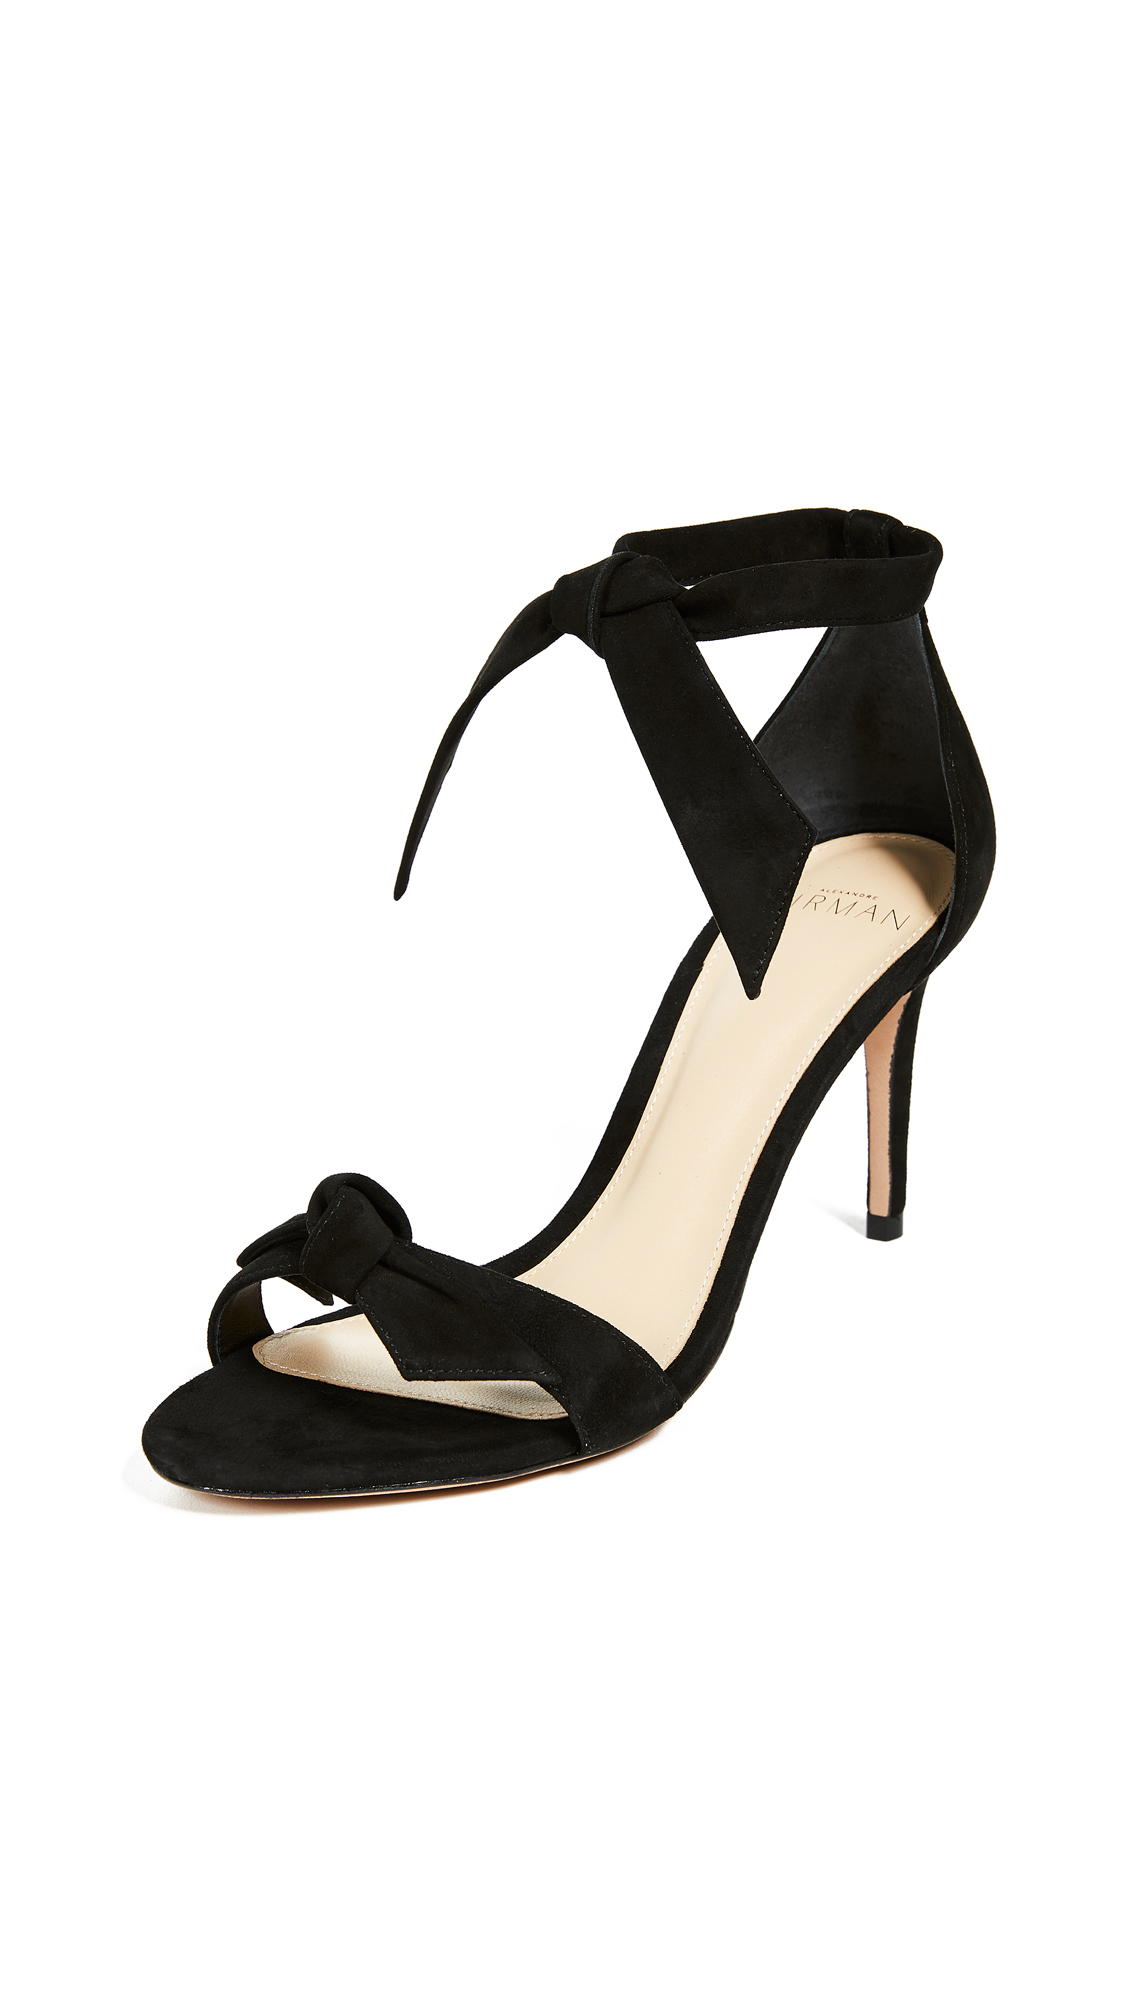 Buy Alexandre Birman Clarita 75mm Sandals online, shop Alexandre Birman